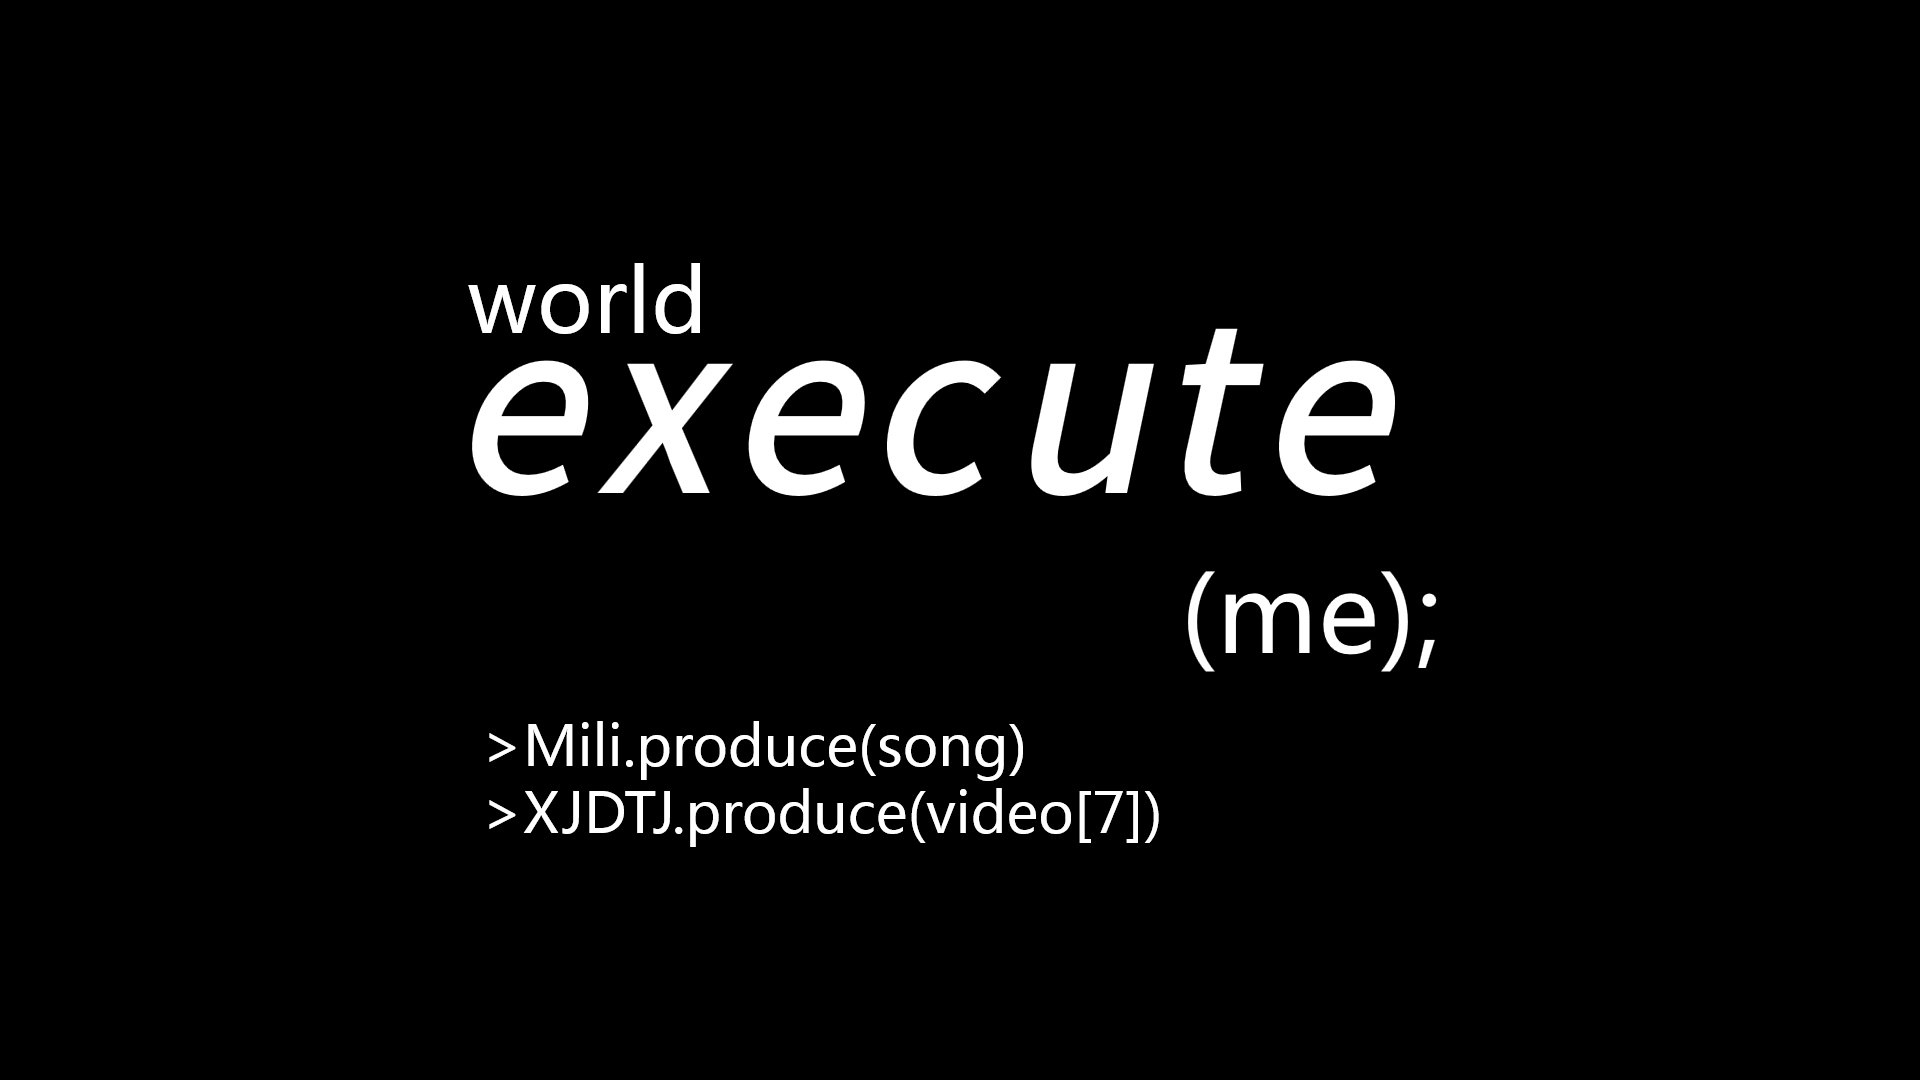 world.execute(me);